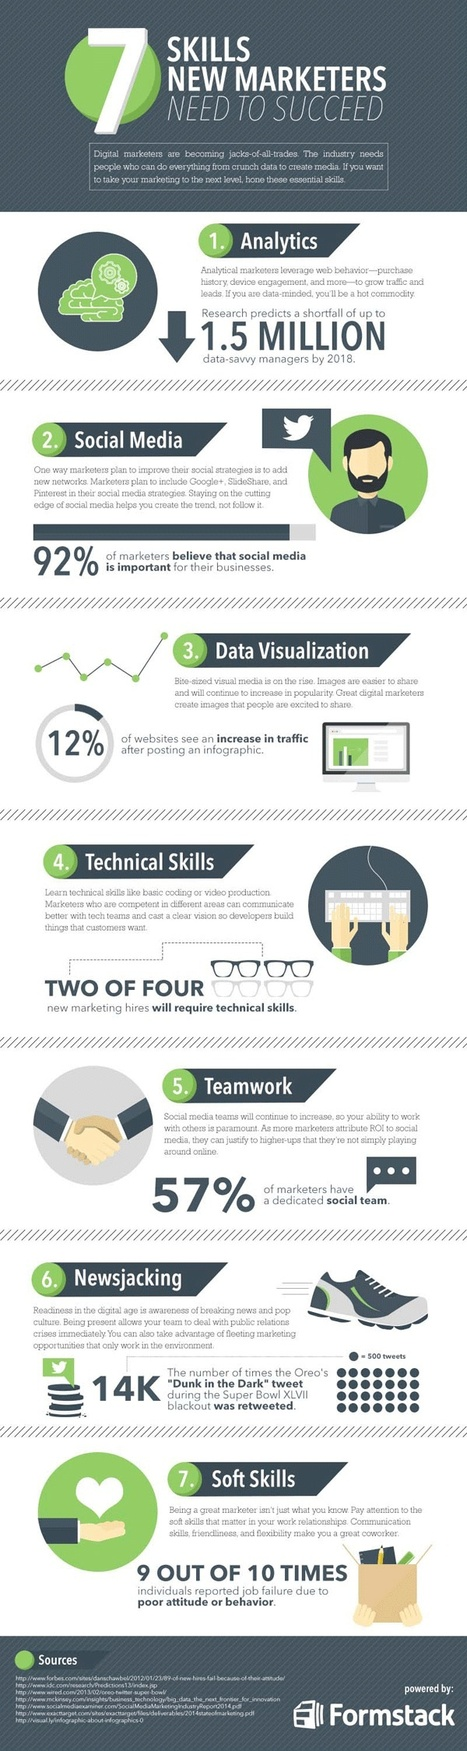 7 Skills All Digital Marketers Need to Succeed (Infographic) | My Digital Journey | Scoop.it